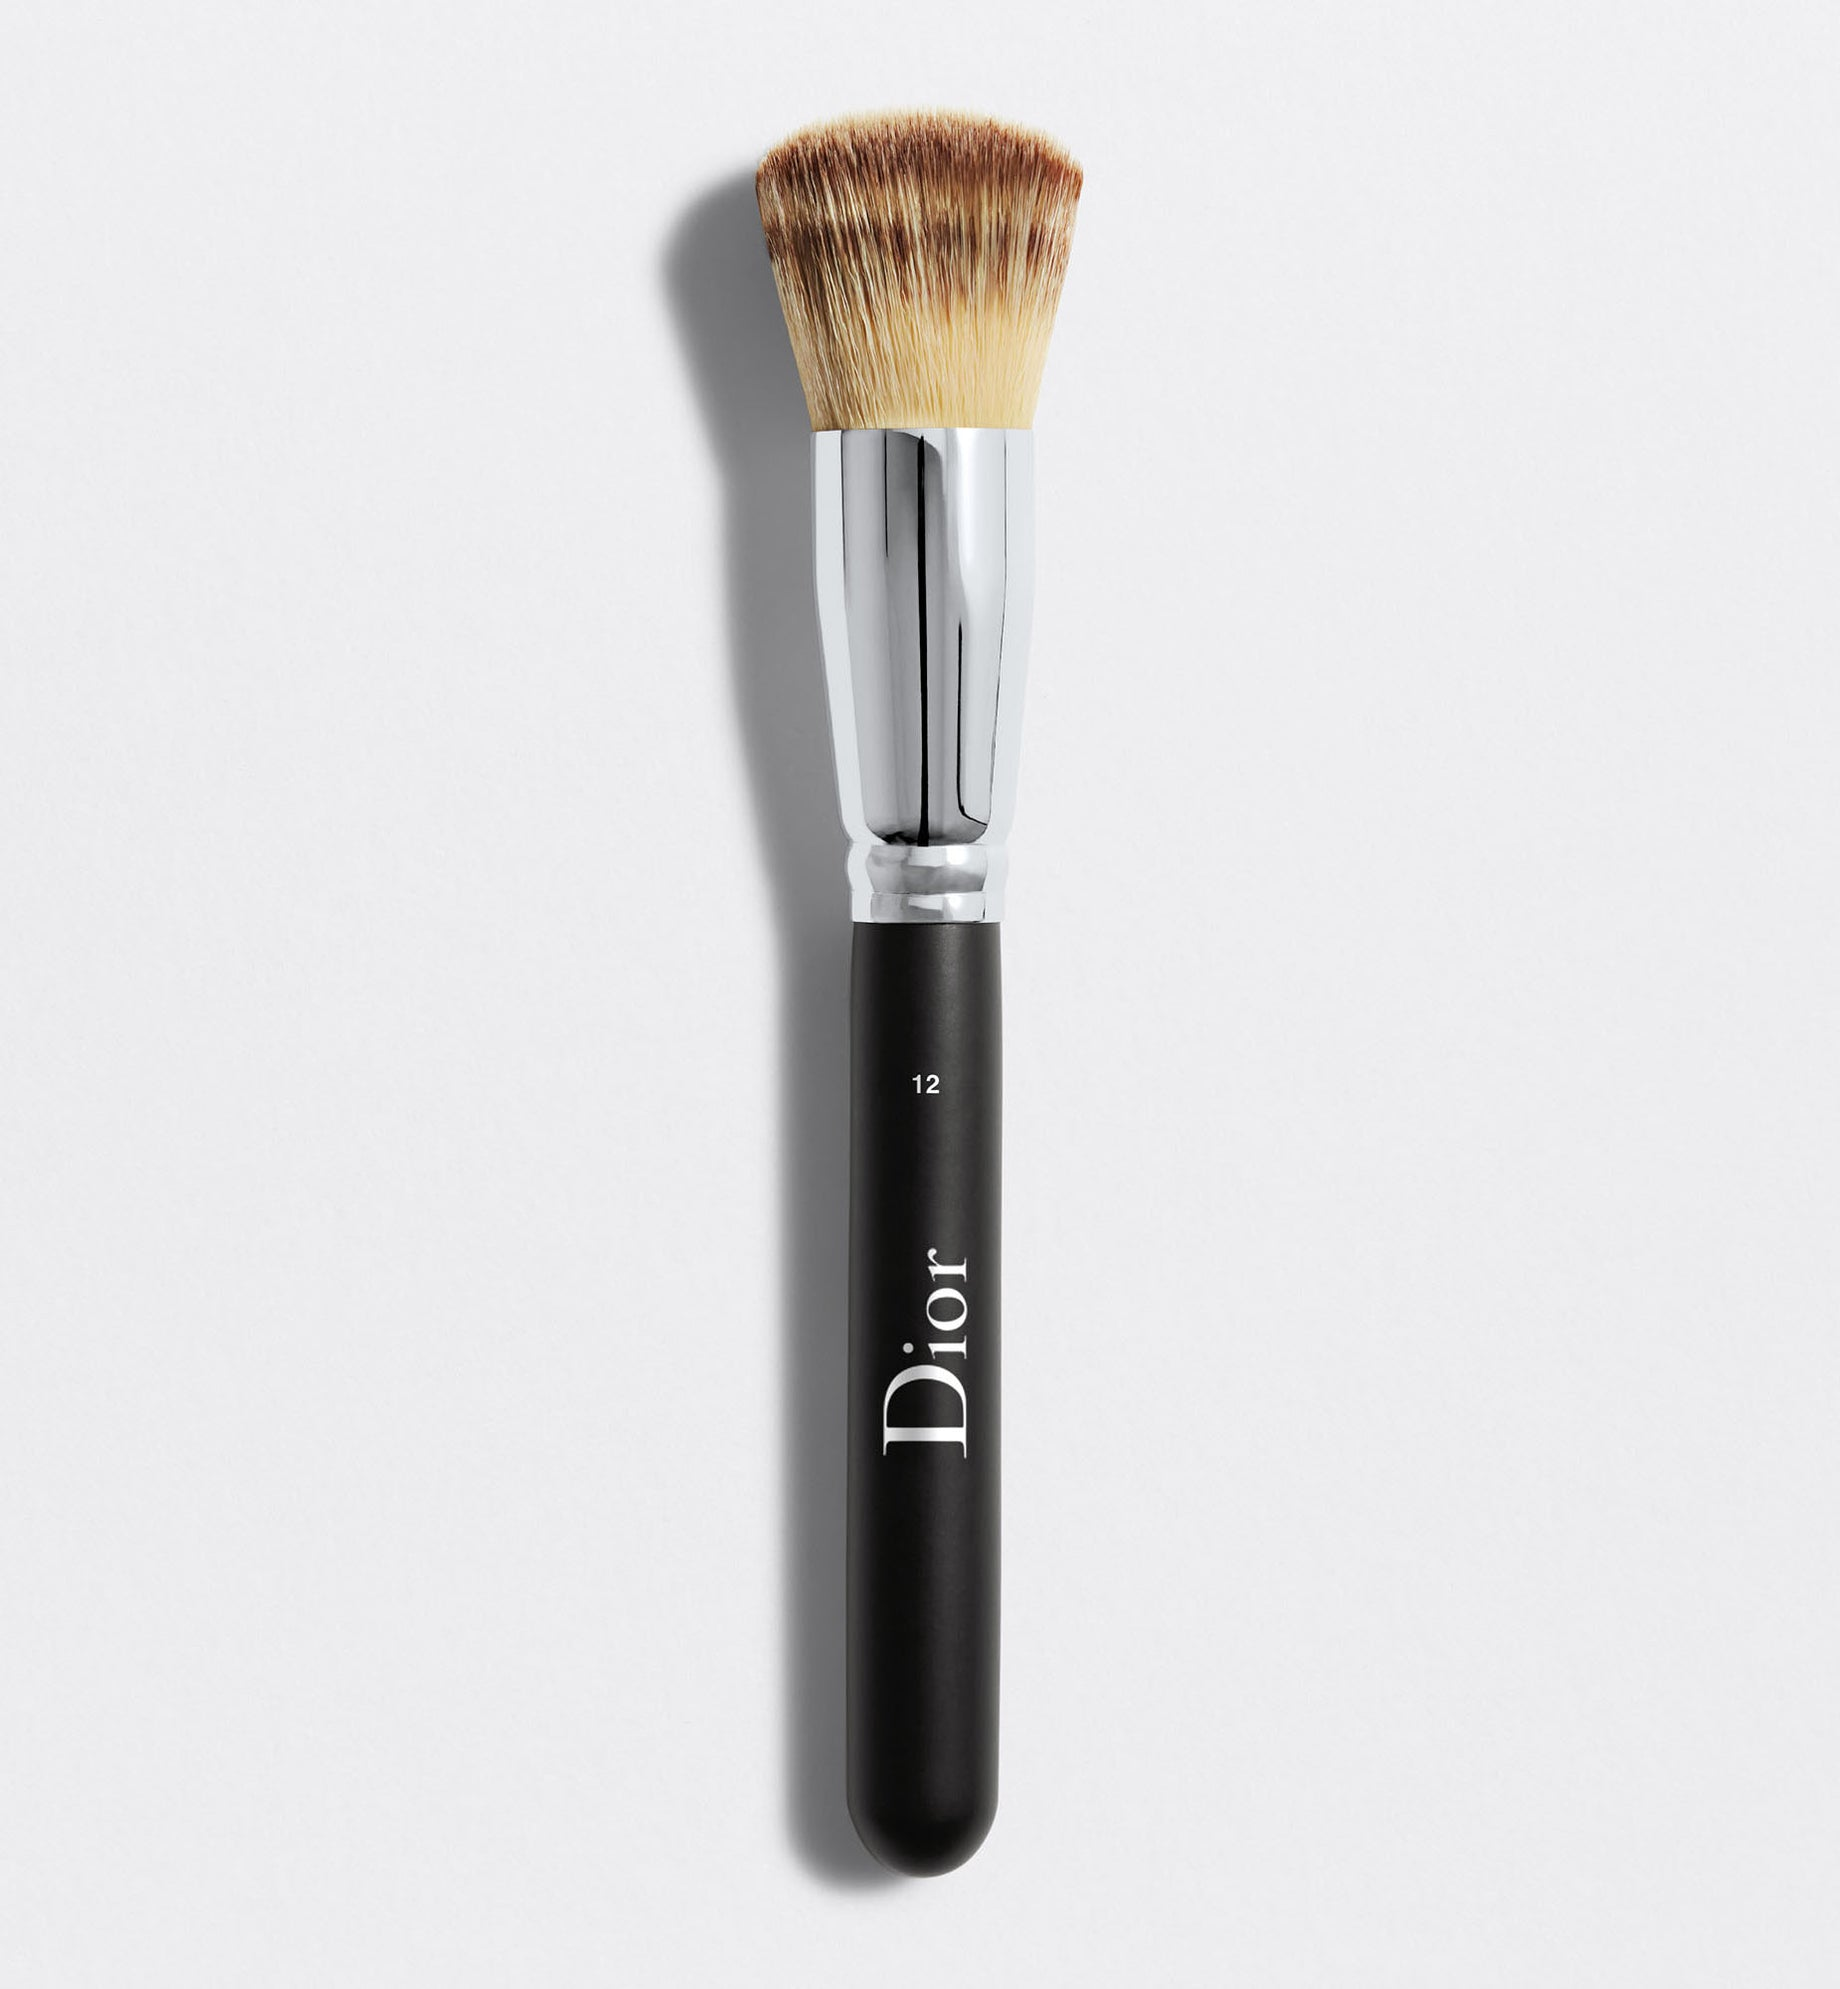 DIOR BACKSTAGE FULL COVERAGE FLUID FOUNDATION BRUSH N°12